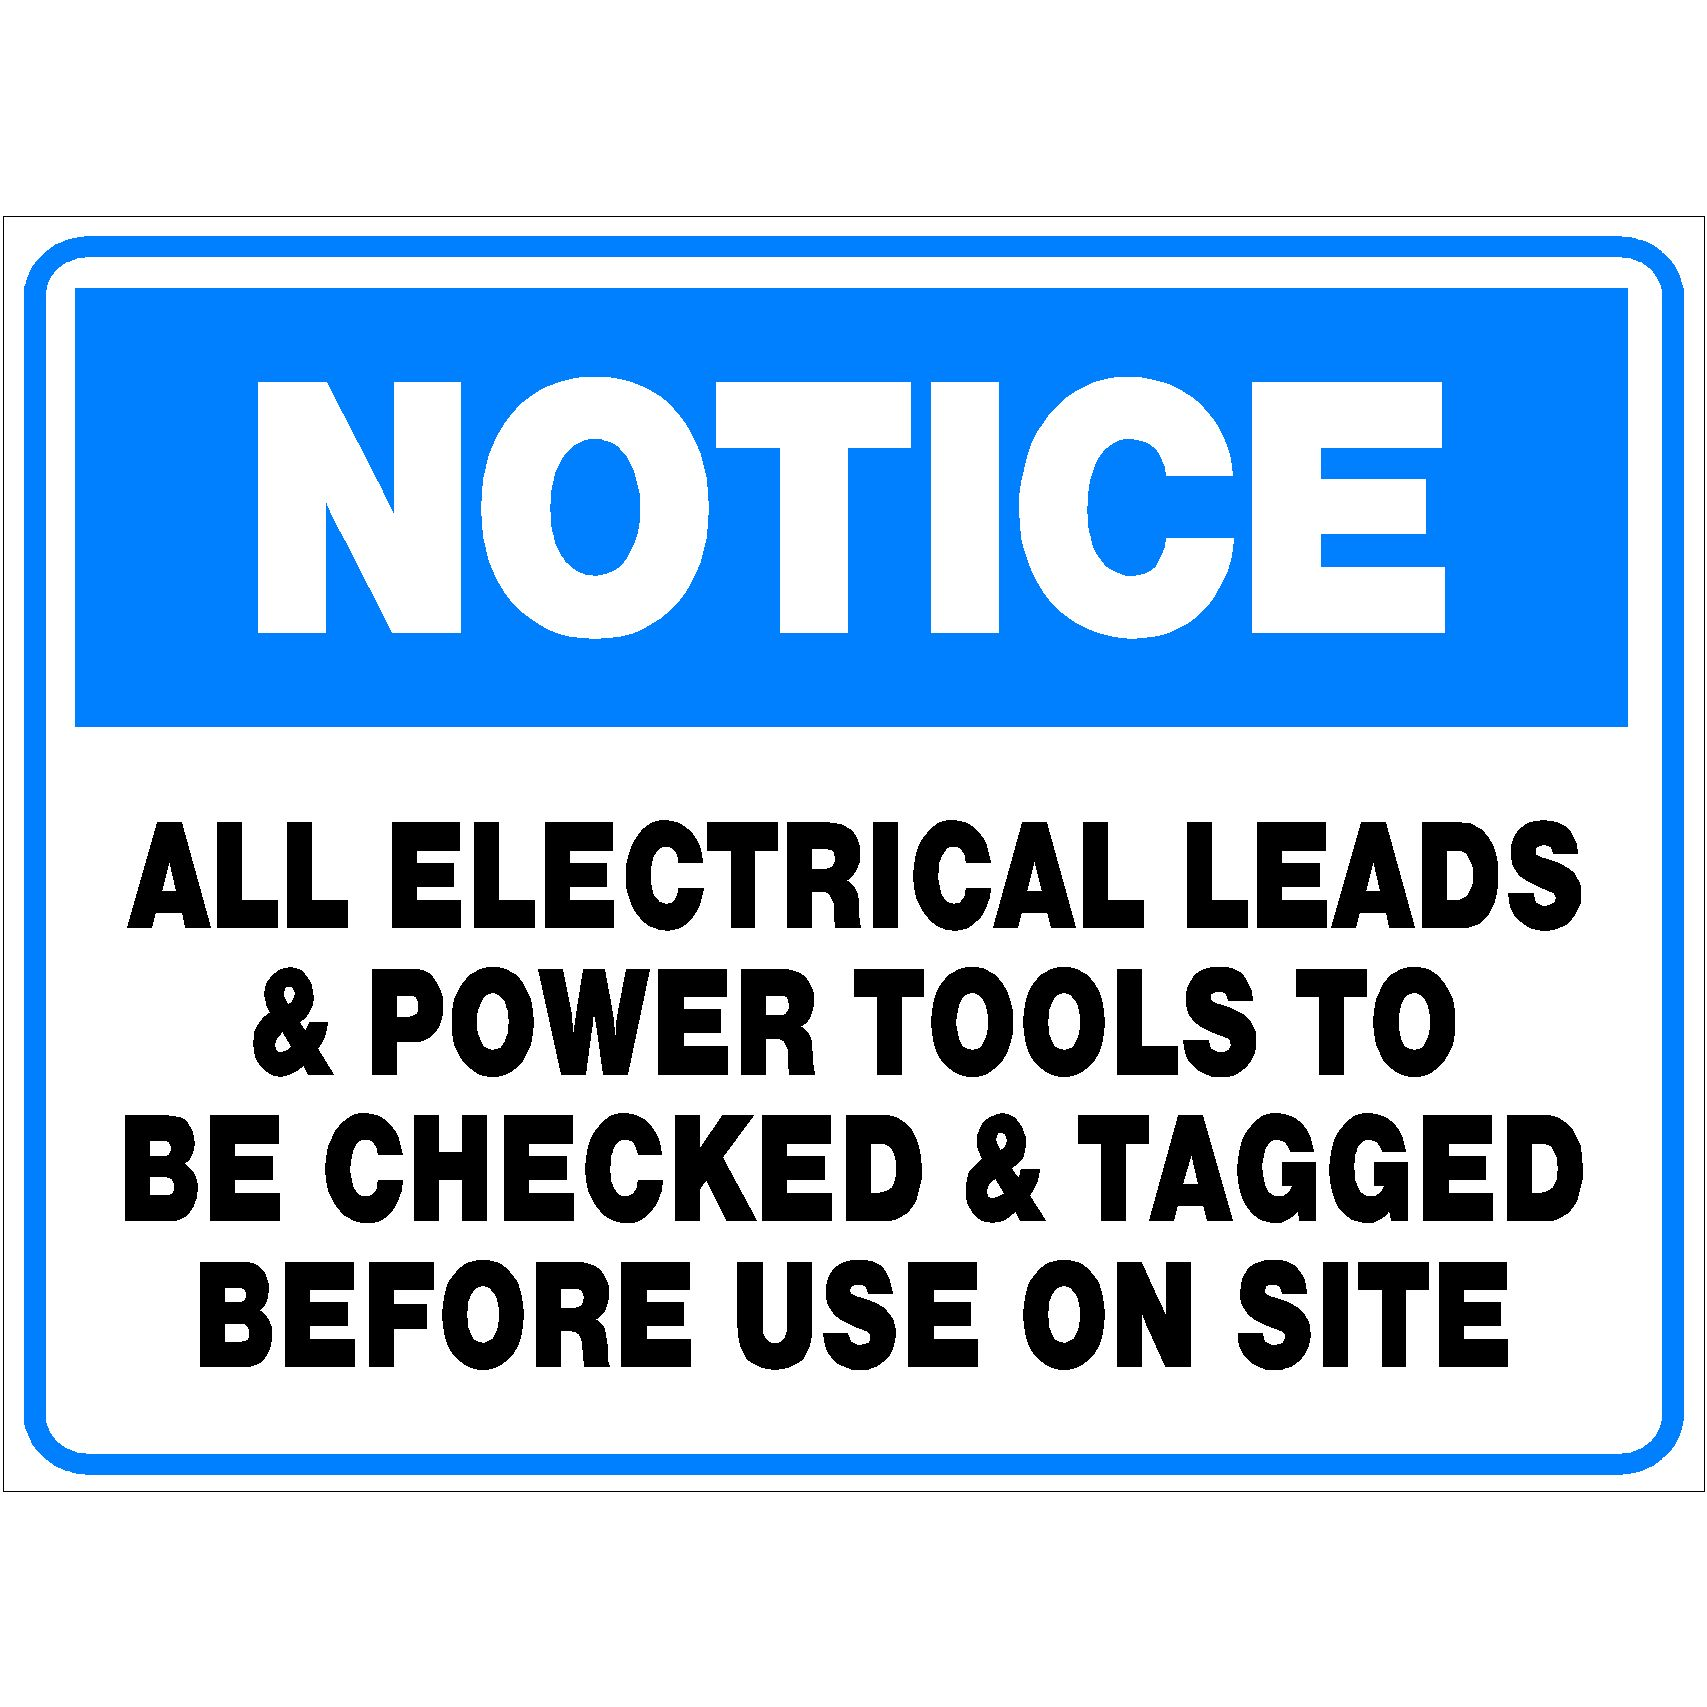 Notice All Electrical Leads And Power Tools To Be Checked And Tagged Before Use On Site